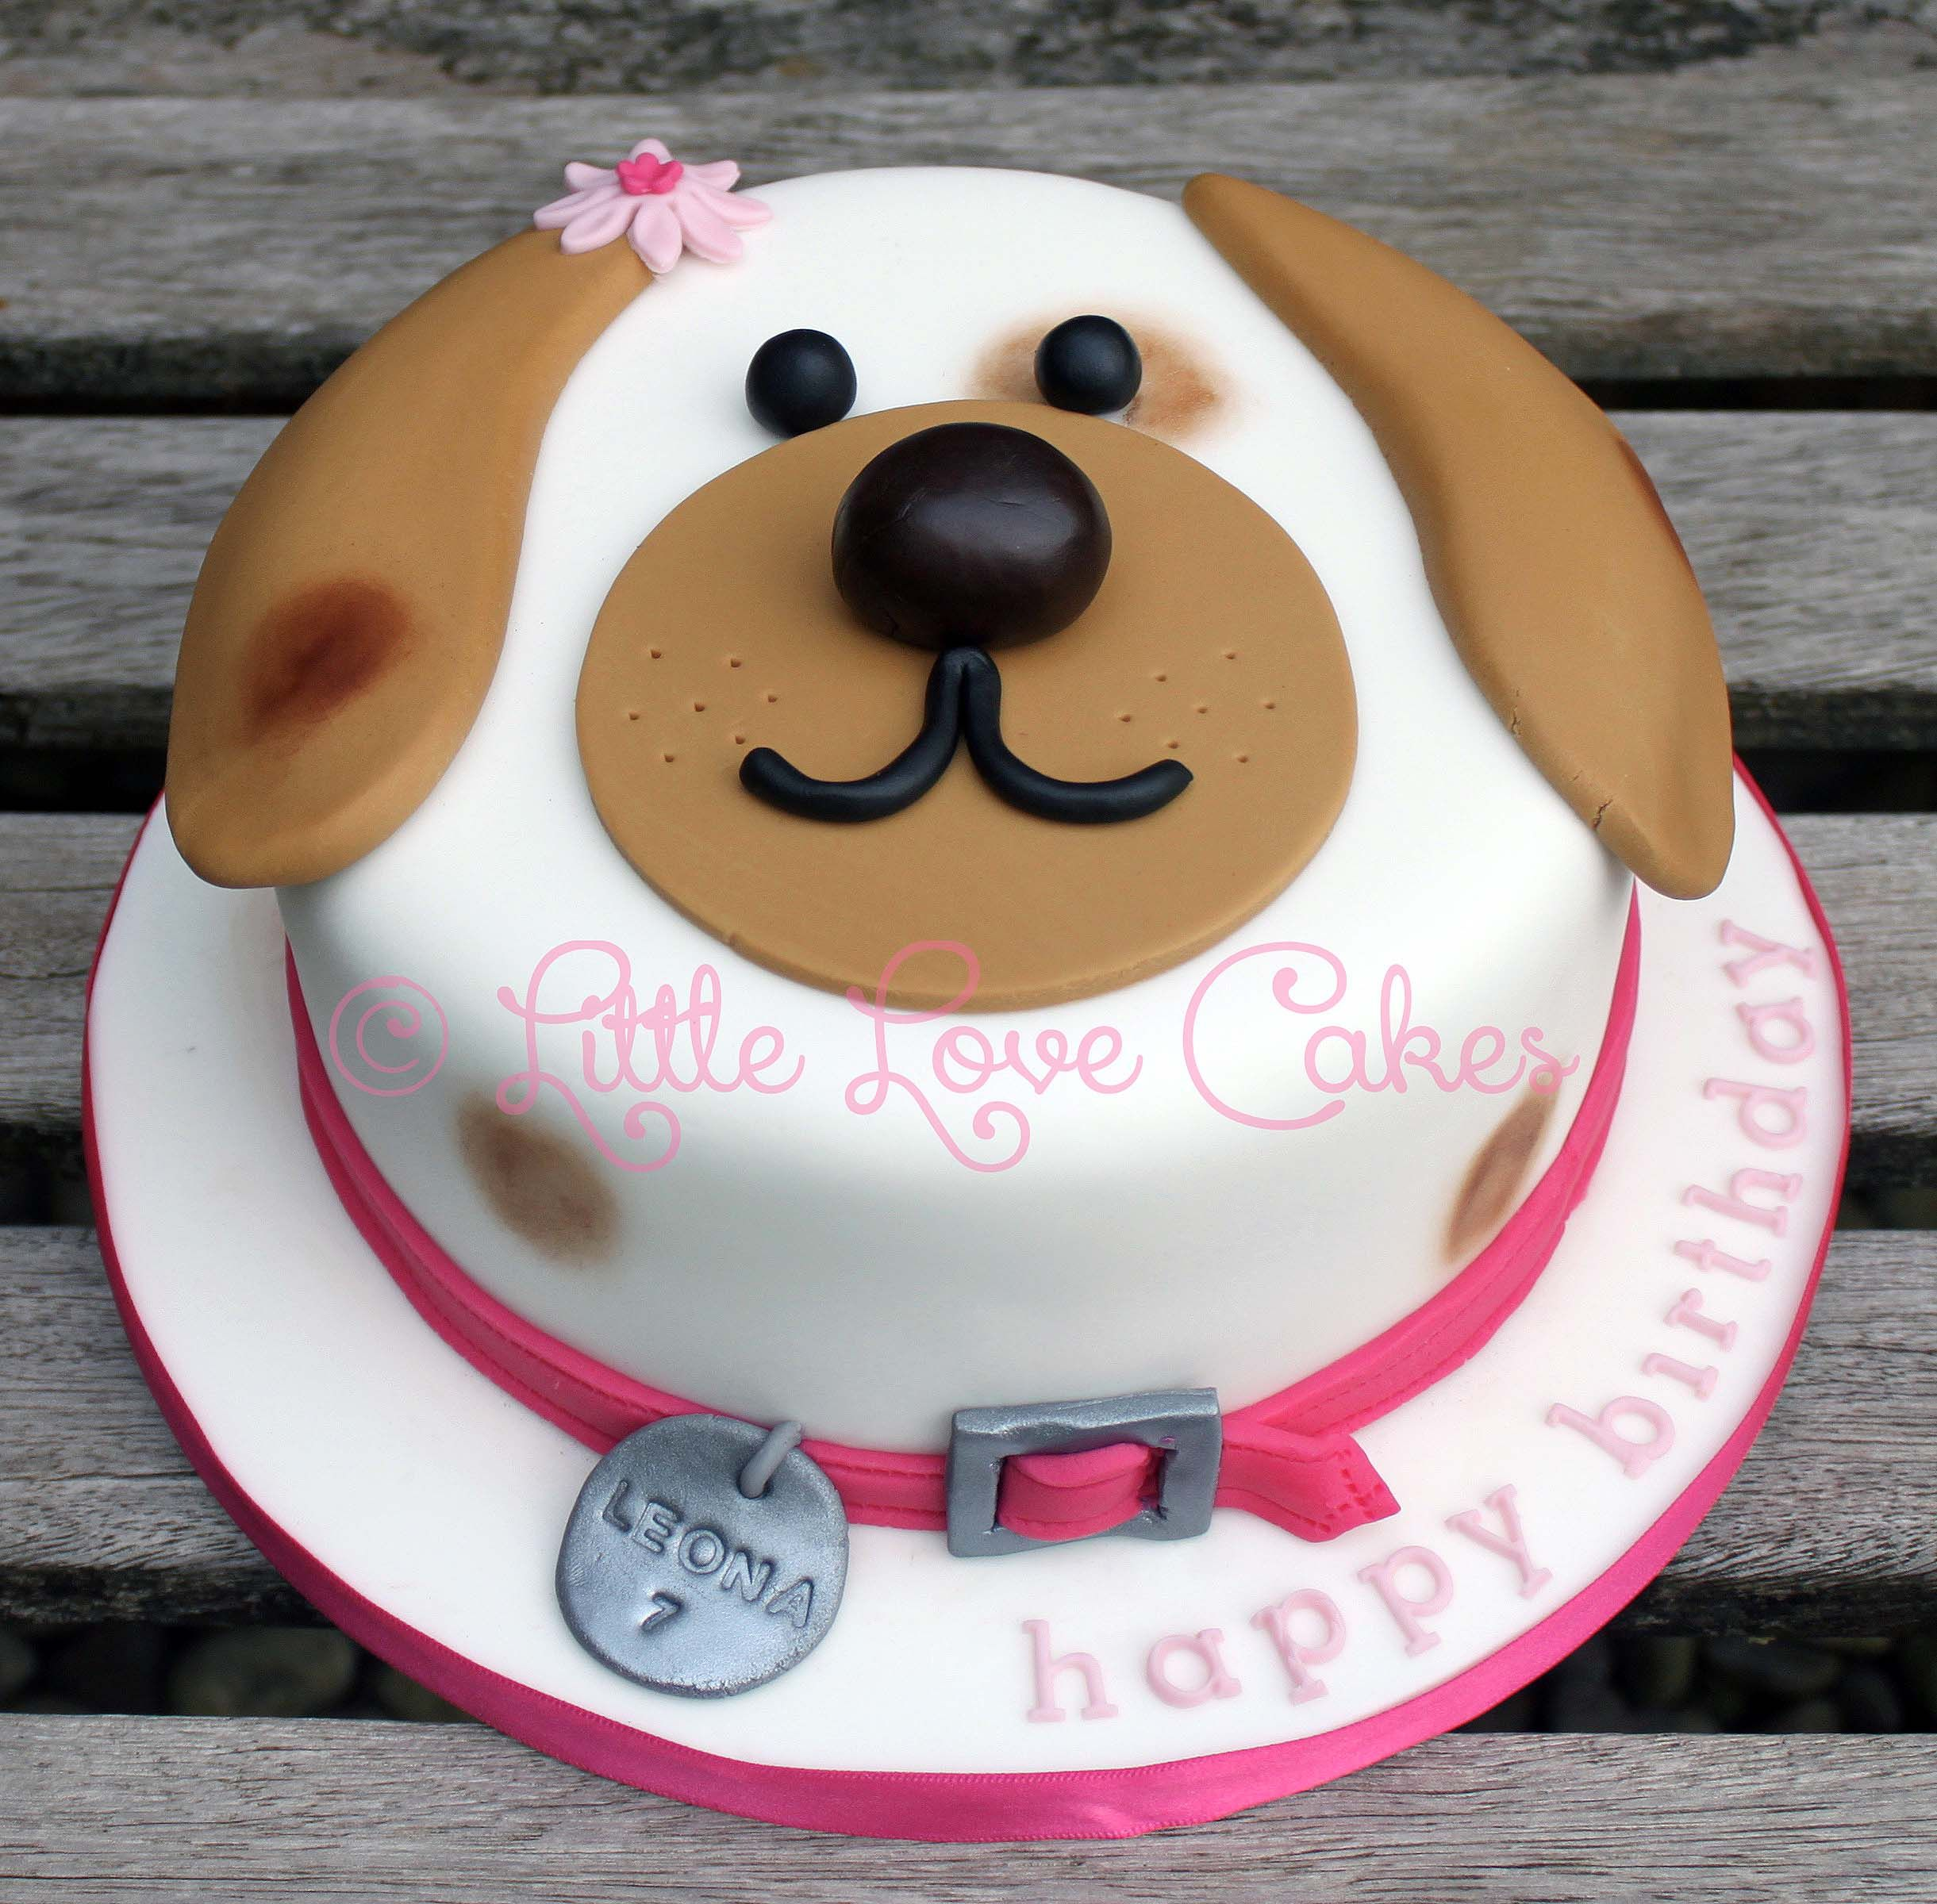 Remarkable Little Love Cakes Cute Dog Face Cake With Images Puppy Birthday Cards Printable Opercafe Filternl